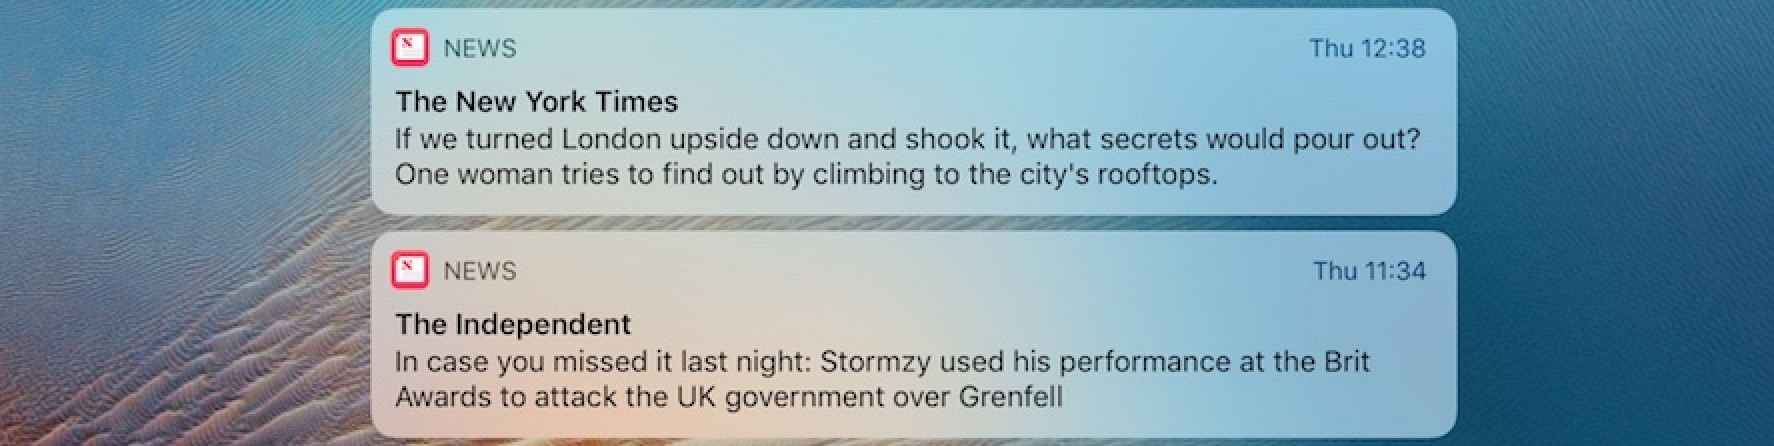 How to Take Control of Apple News Alerts in iOS 11 - MacRumors